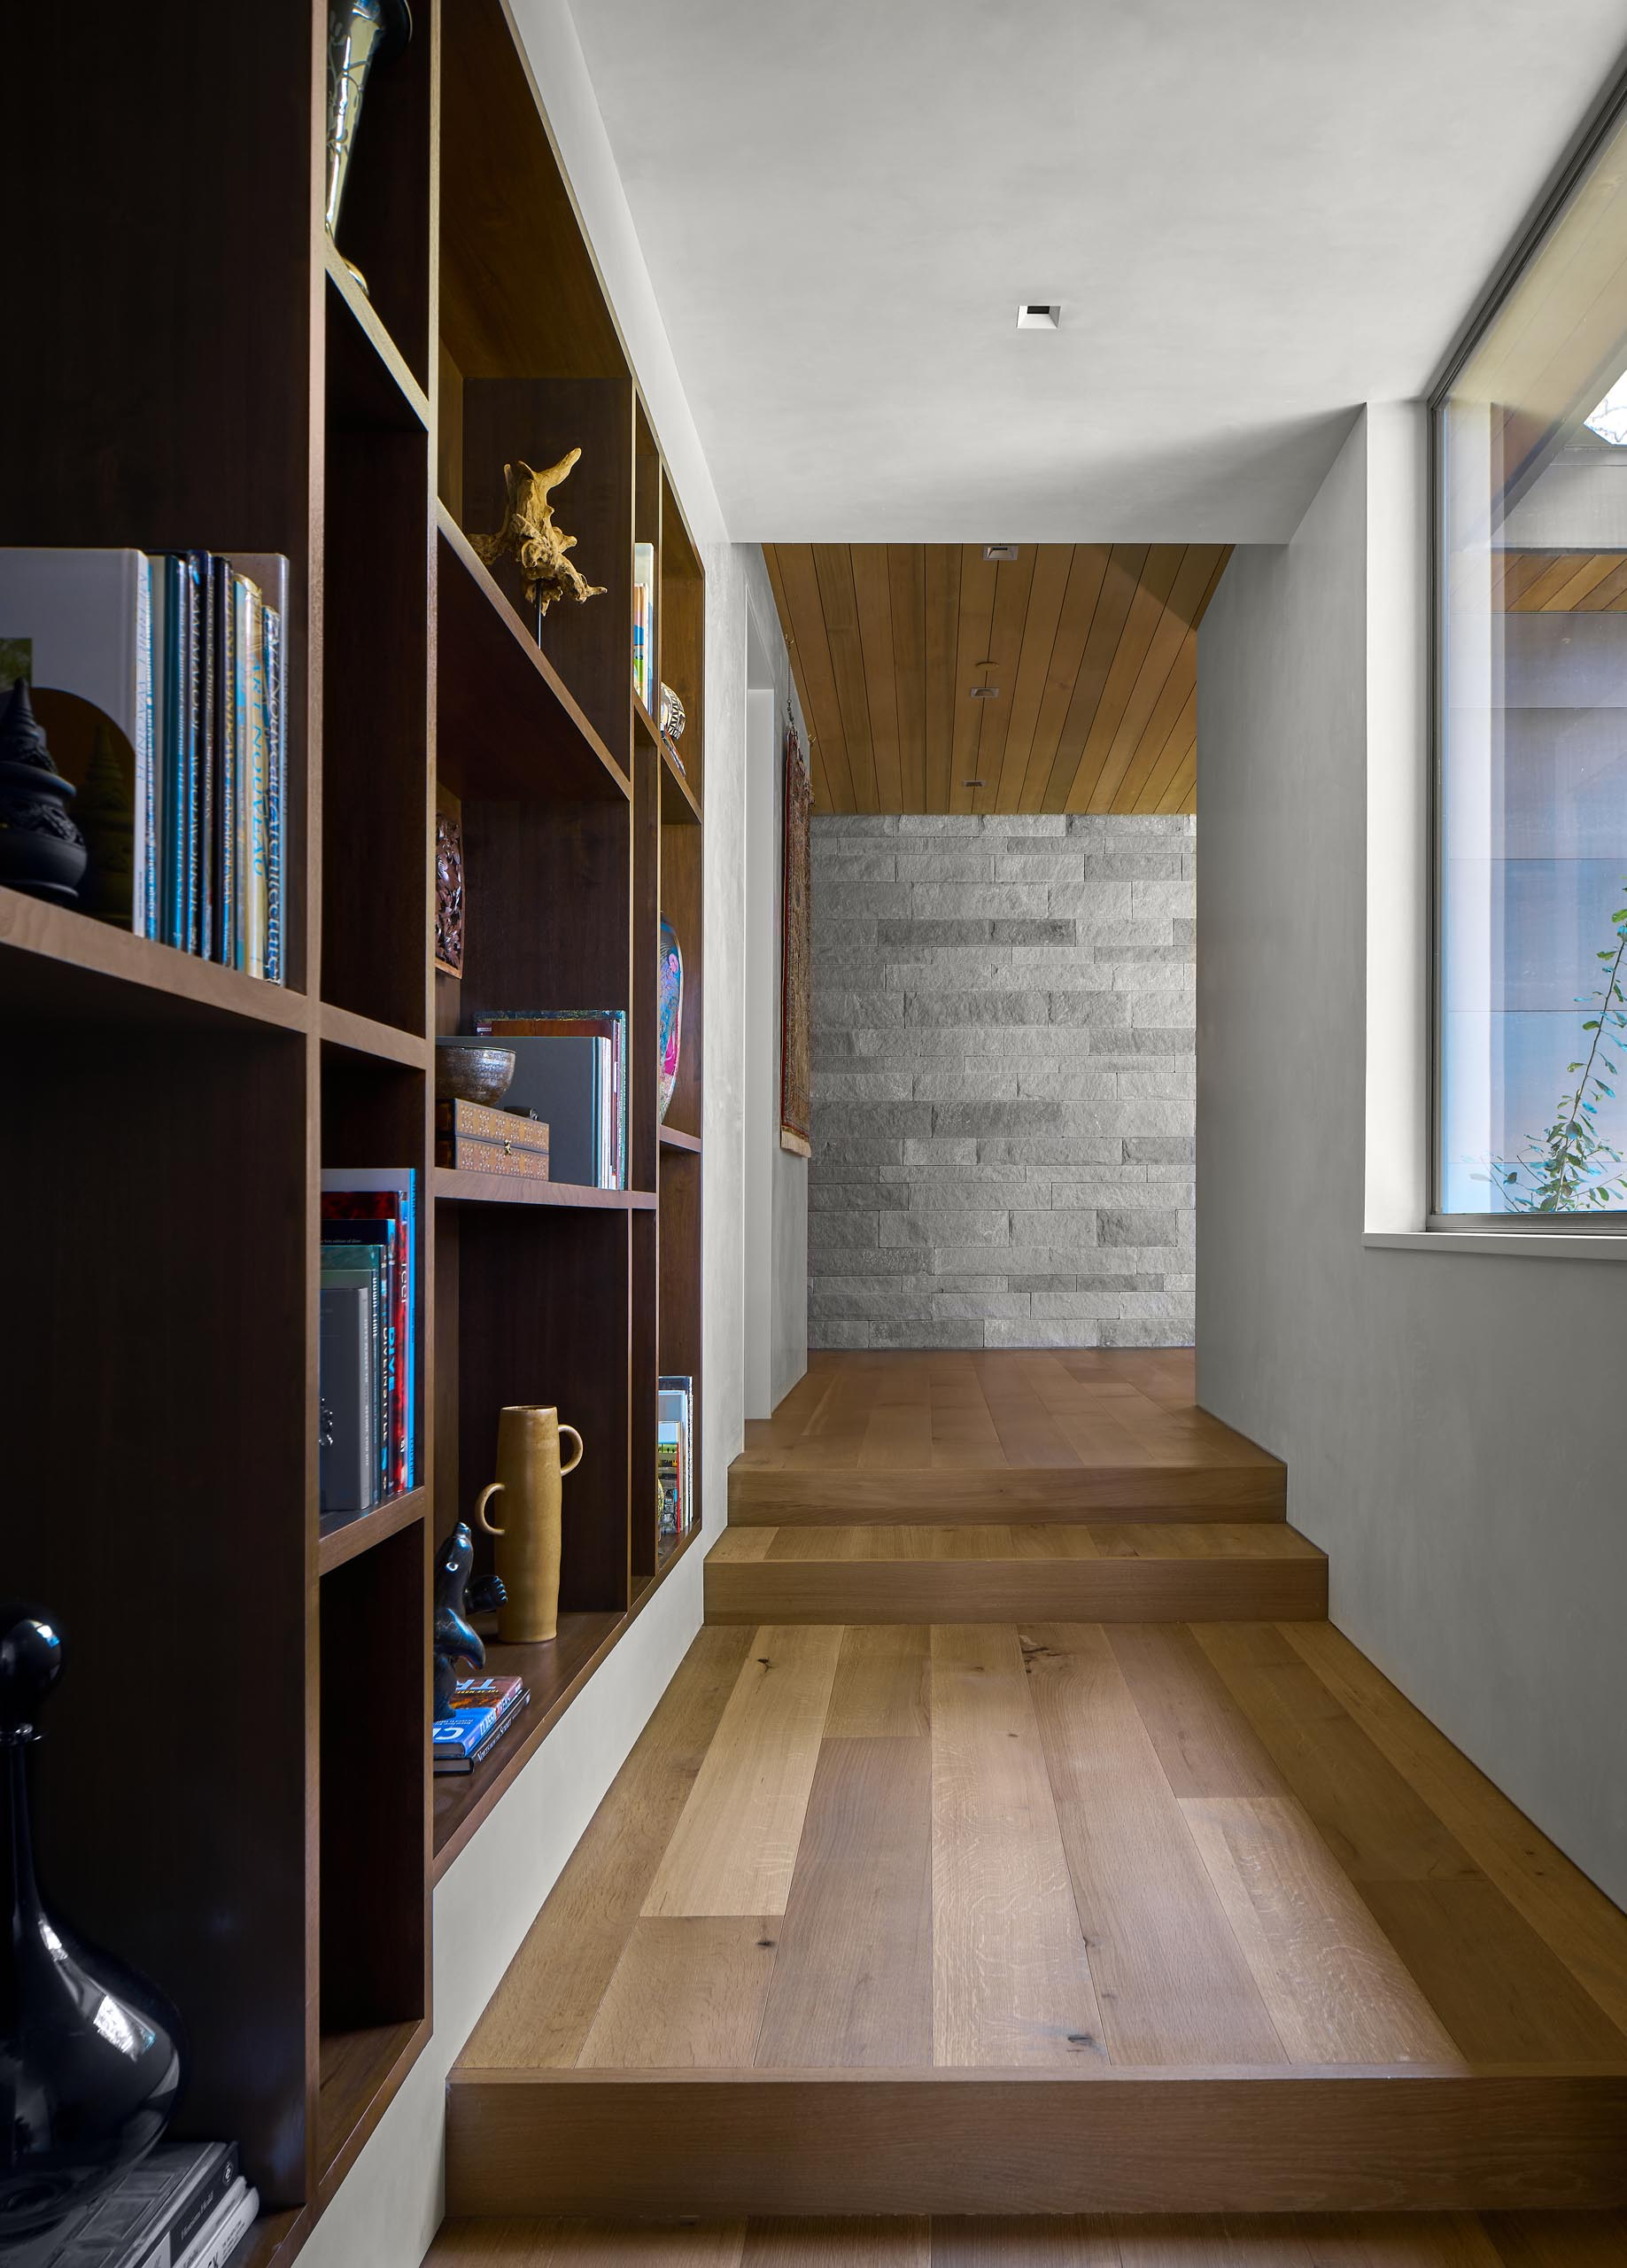 A hallway with wood flooring and built-in shelving connects the various areas of the home.